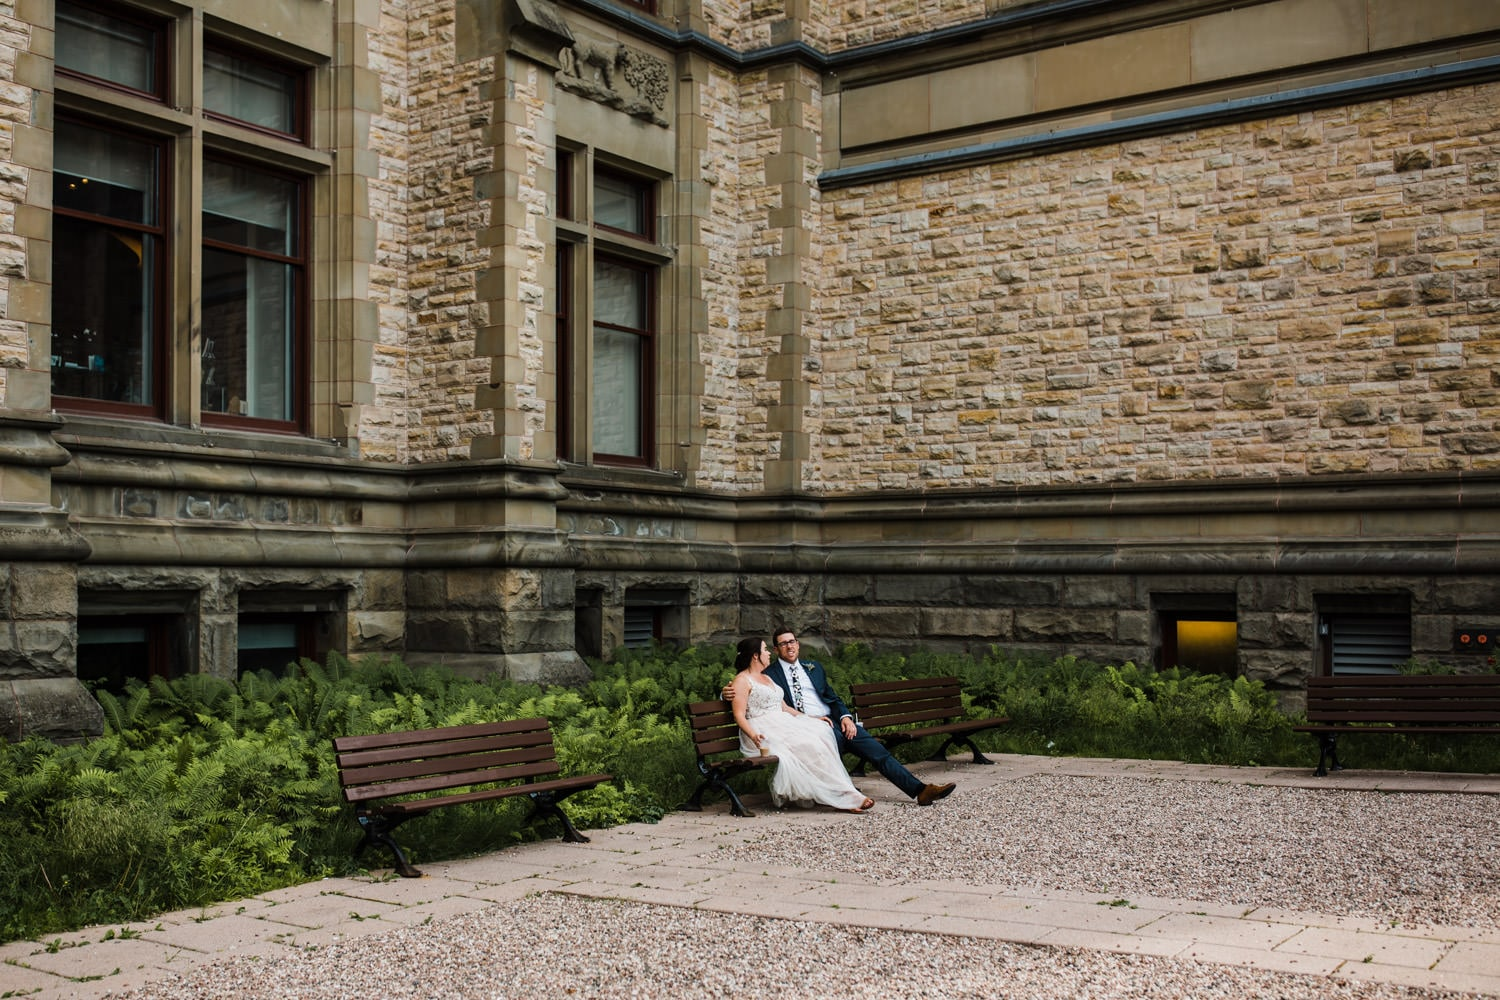 bride and groom sit on bench together - downtown ottawa feeling